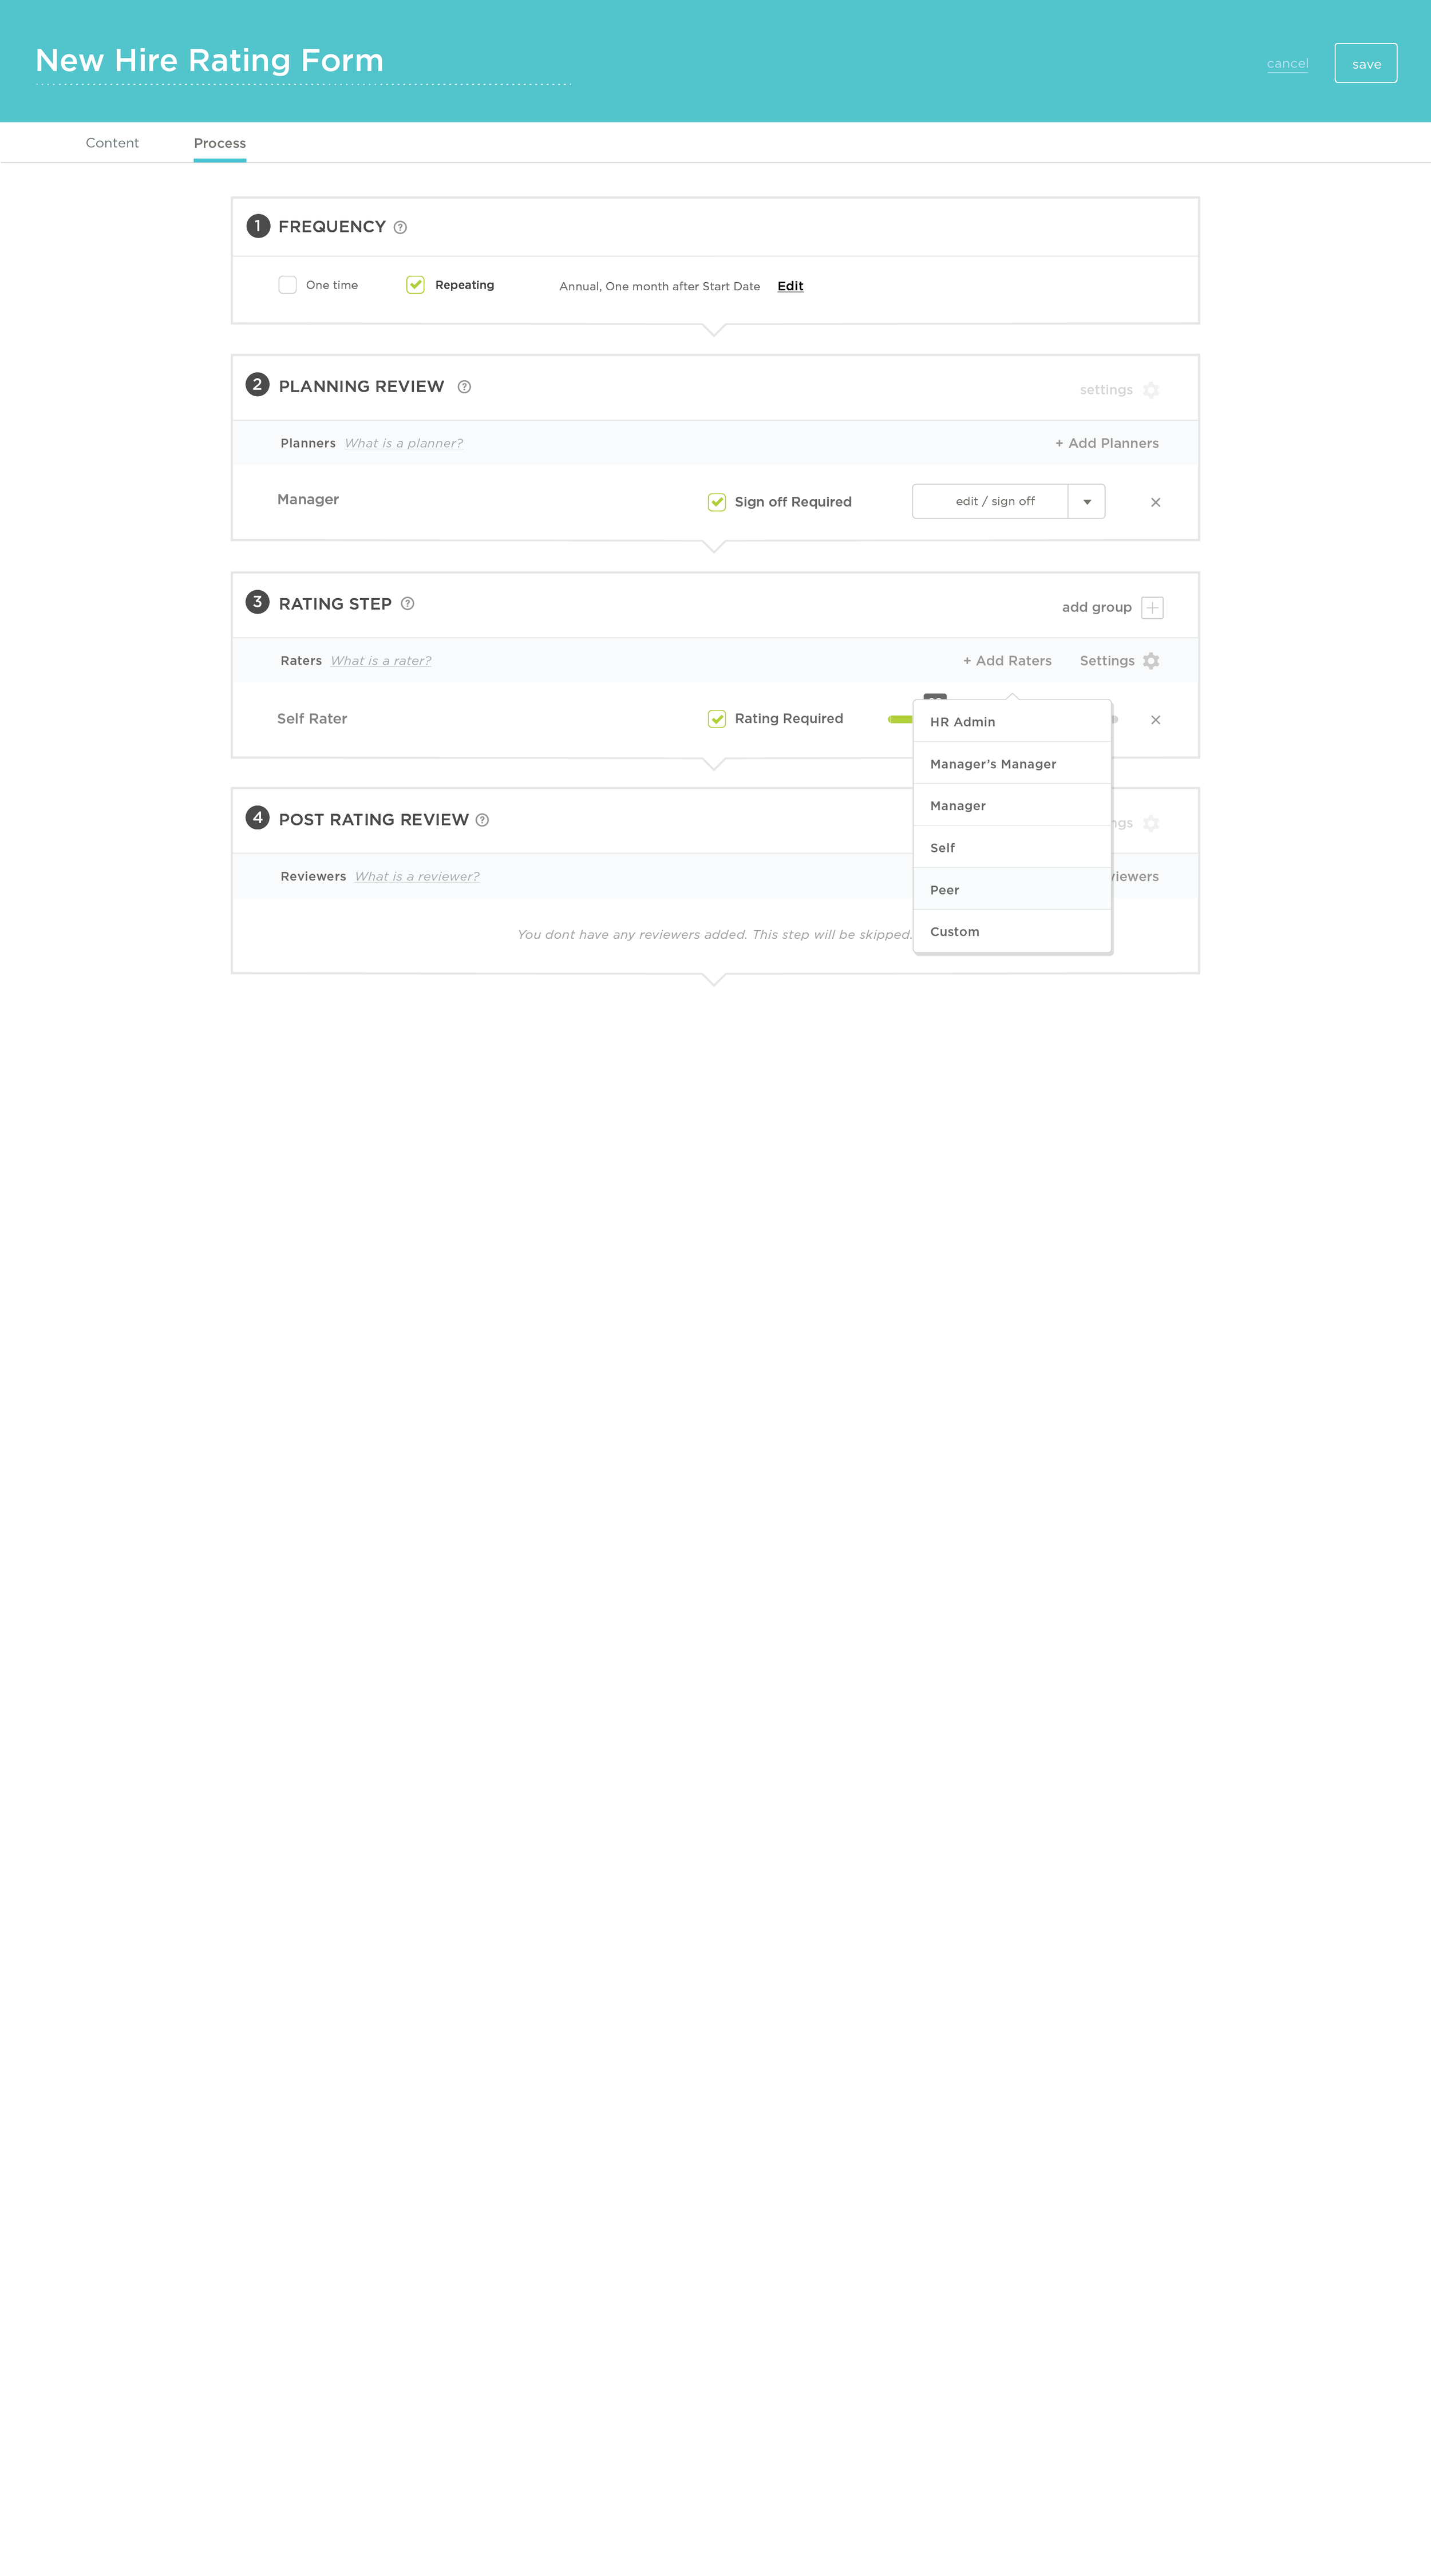 Invision_Pe_rating-form-process_03_12.png